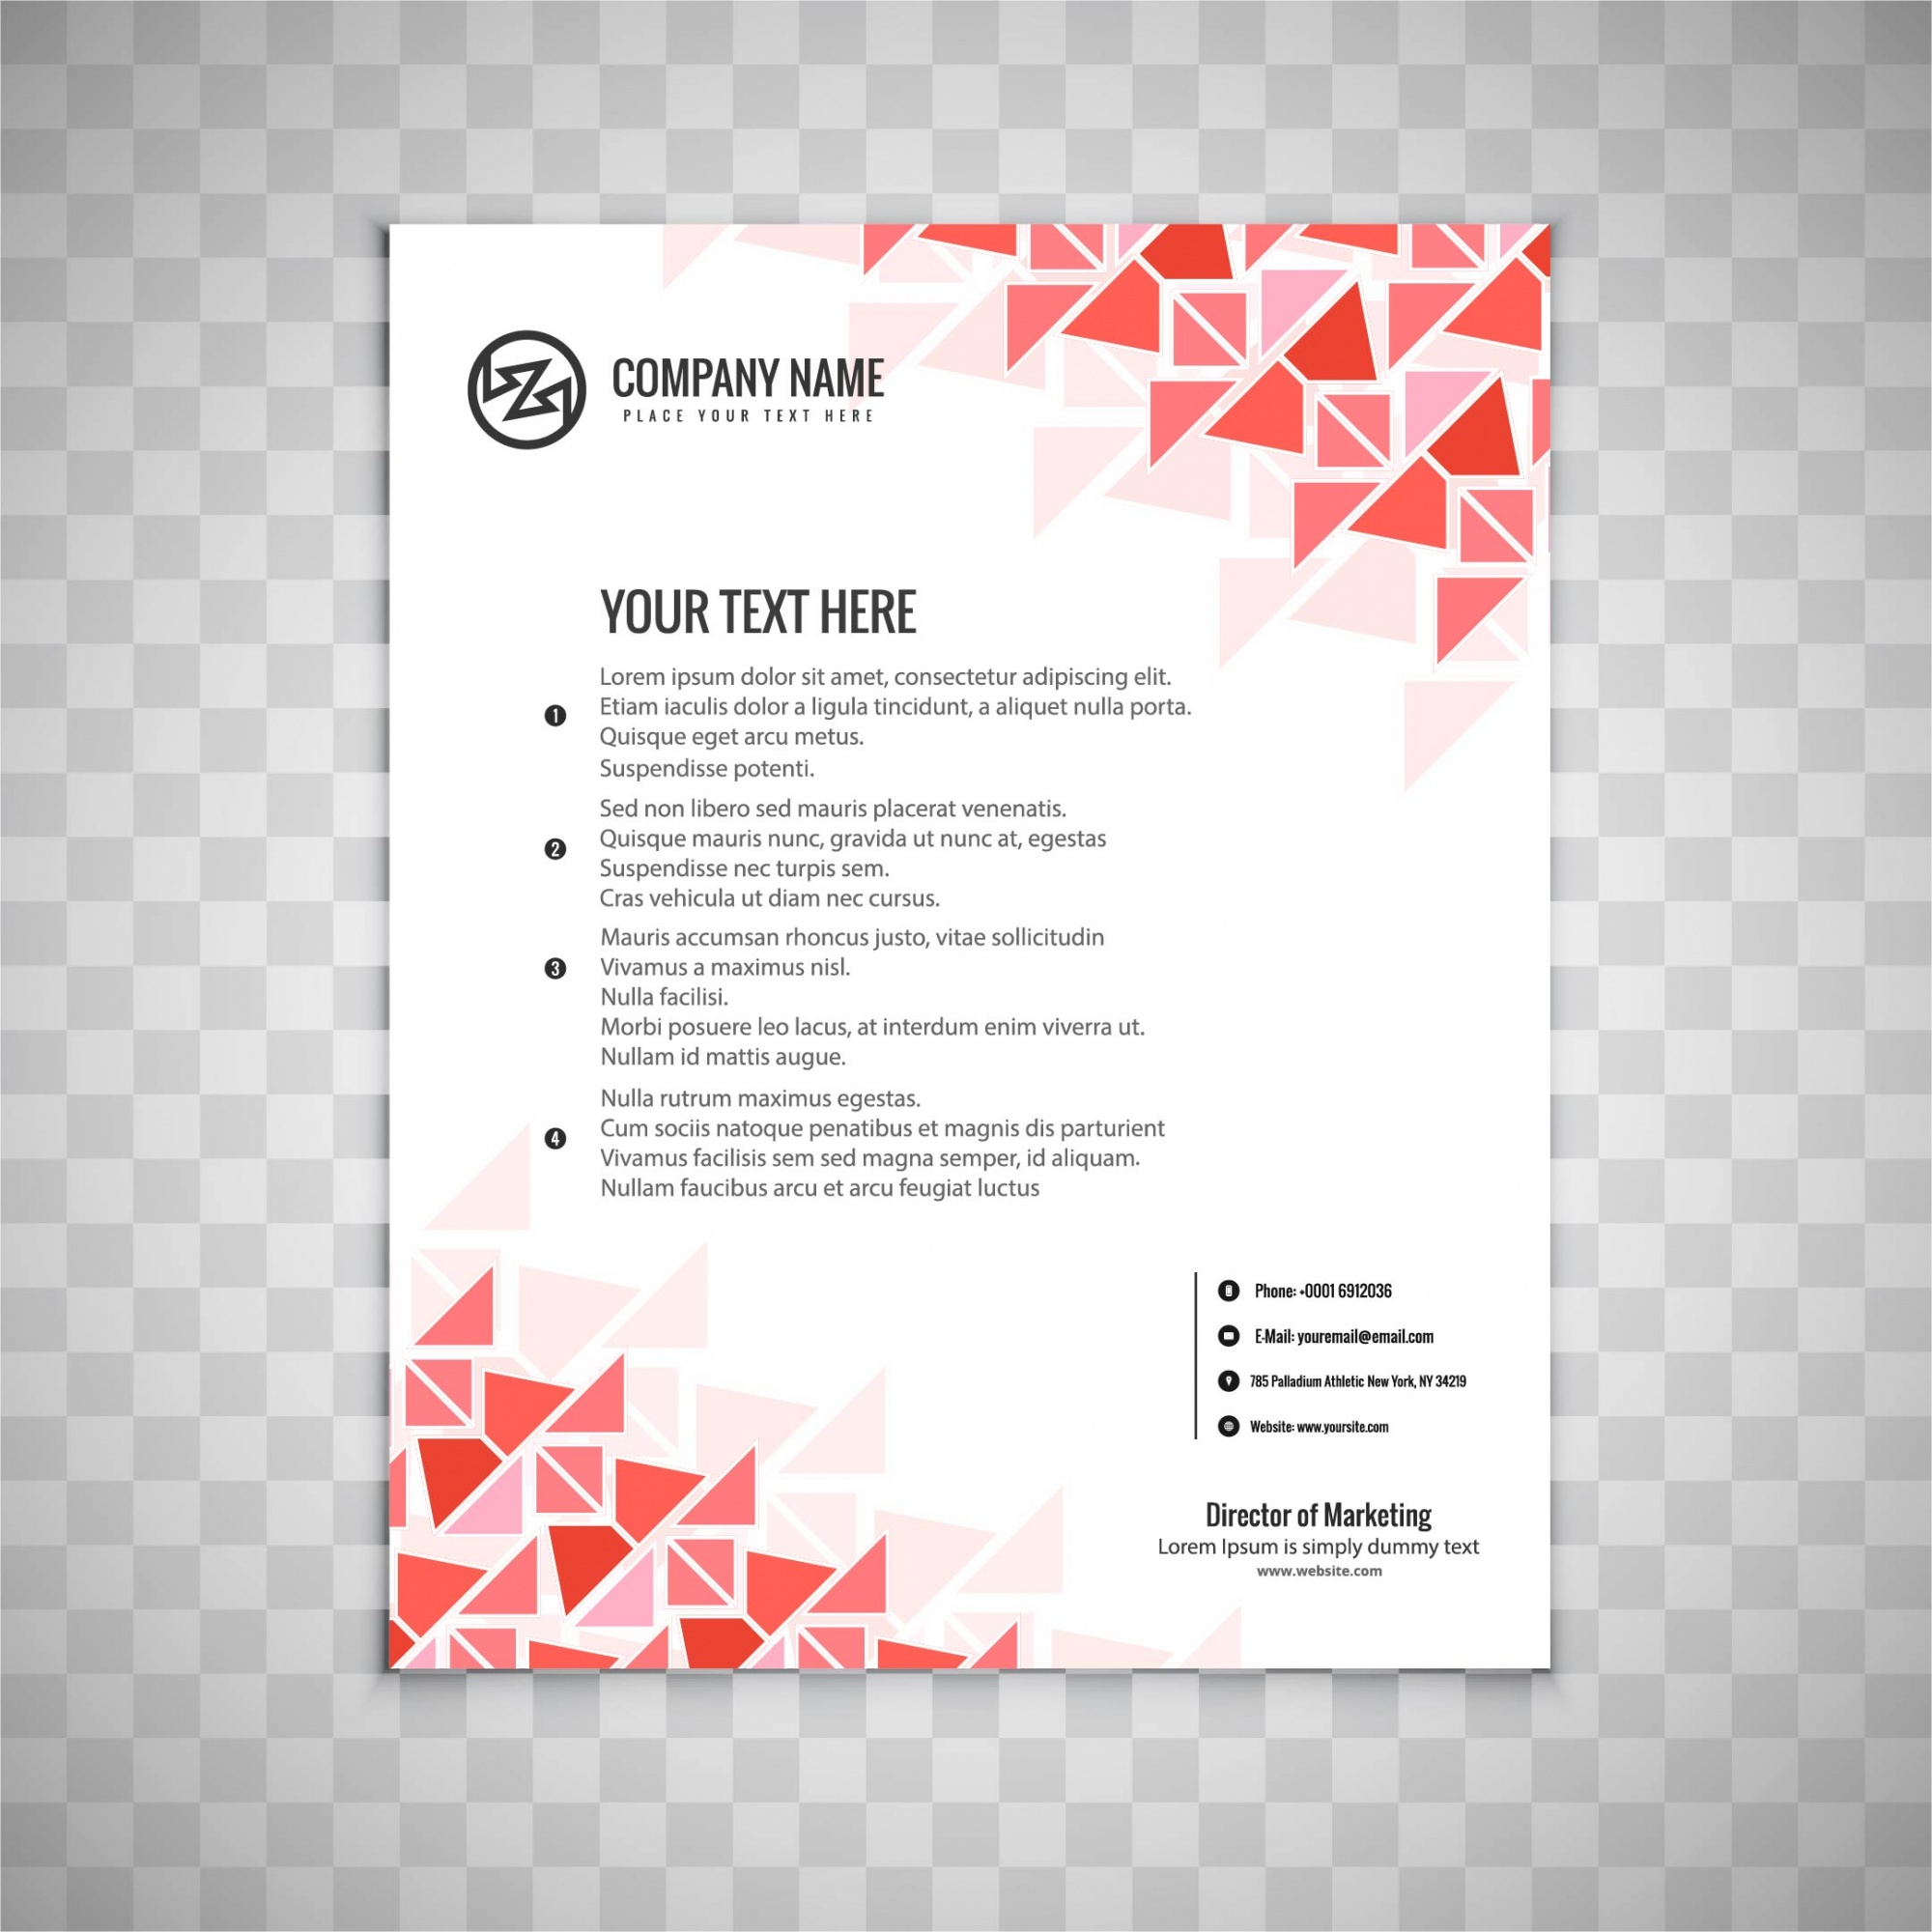 Business brochure design with red triangular shapes